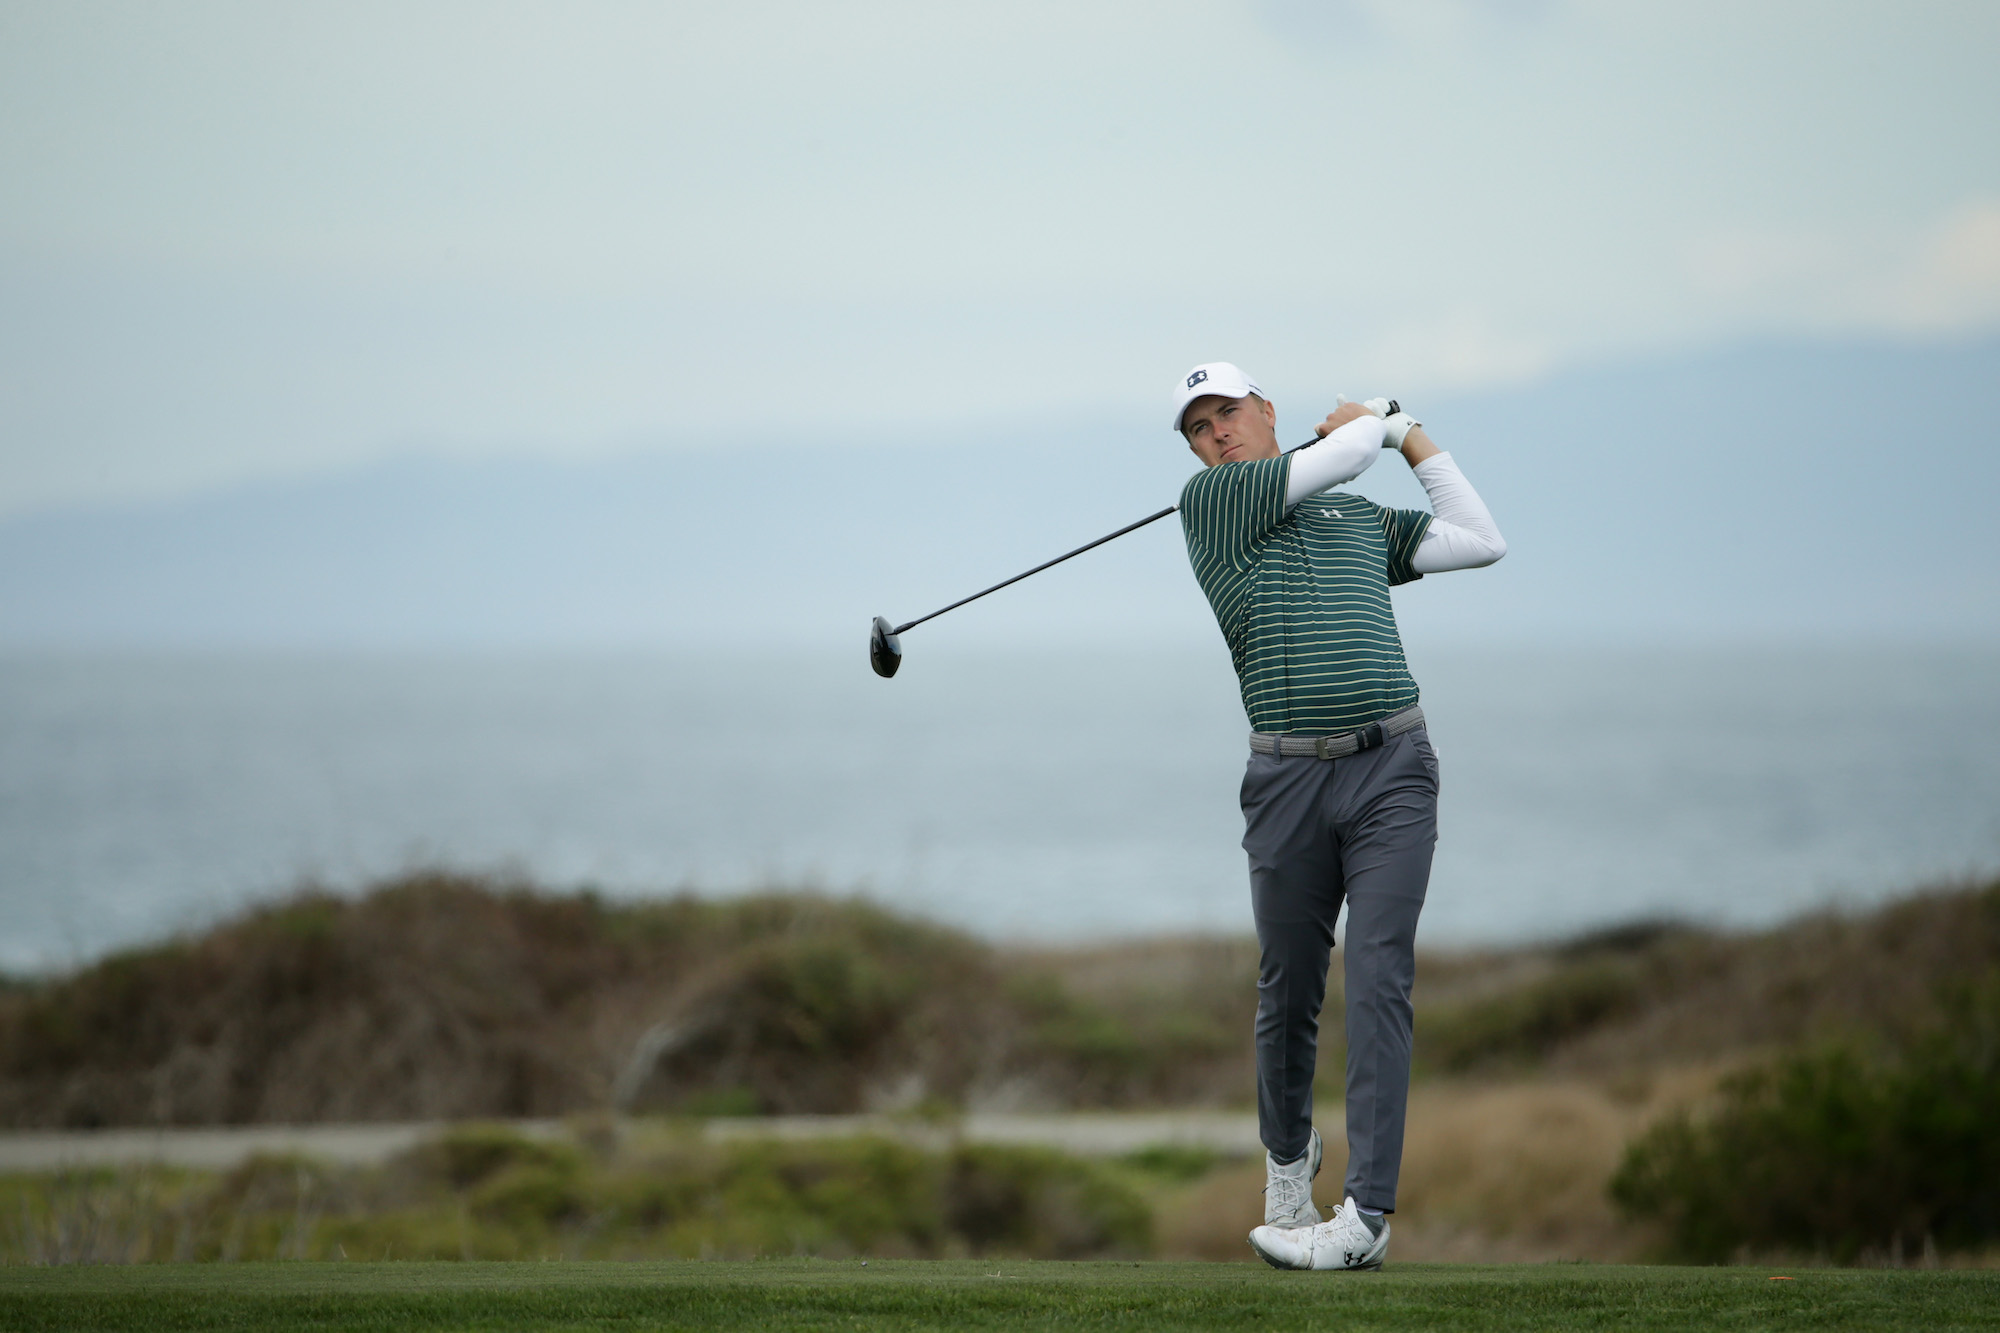 2019 AT&T Pebble Beach Pro-Am: Round 1 - Tee Shot on No. 12